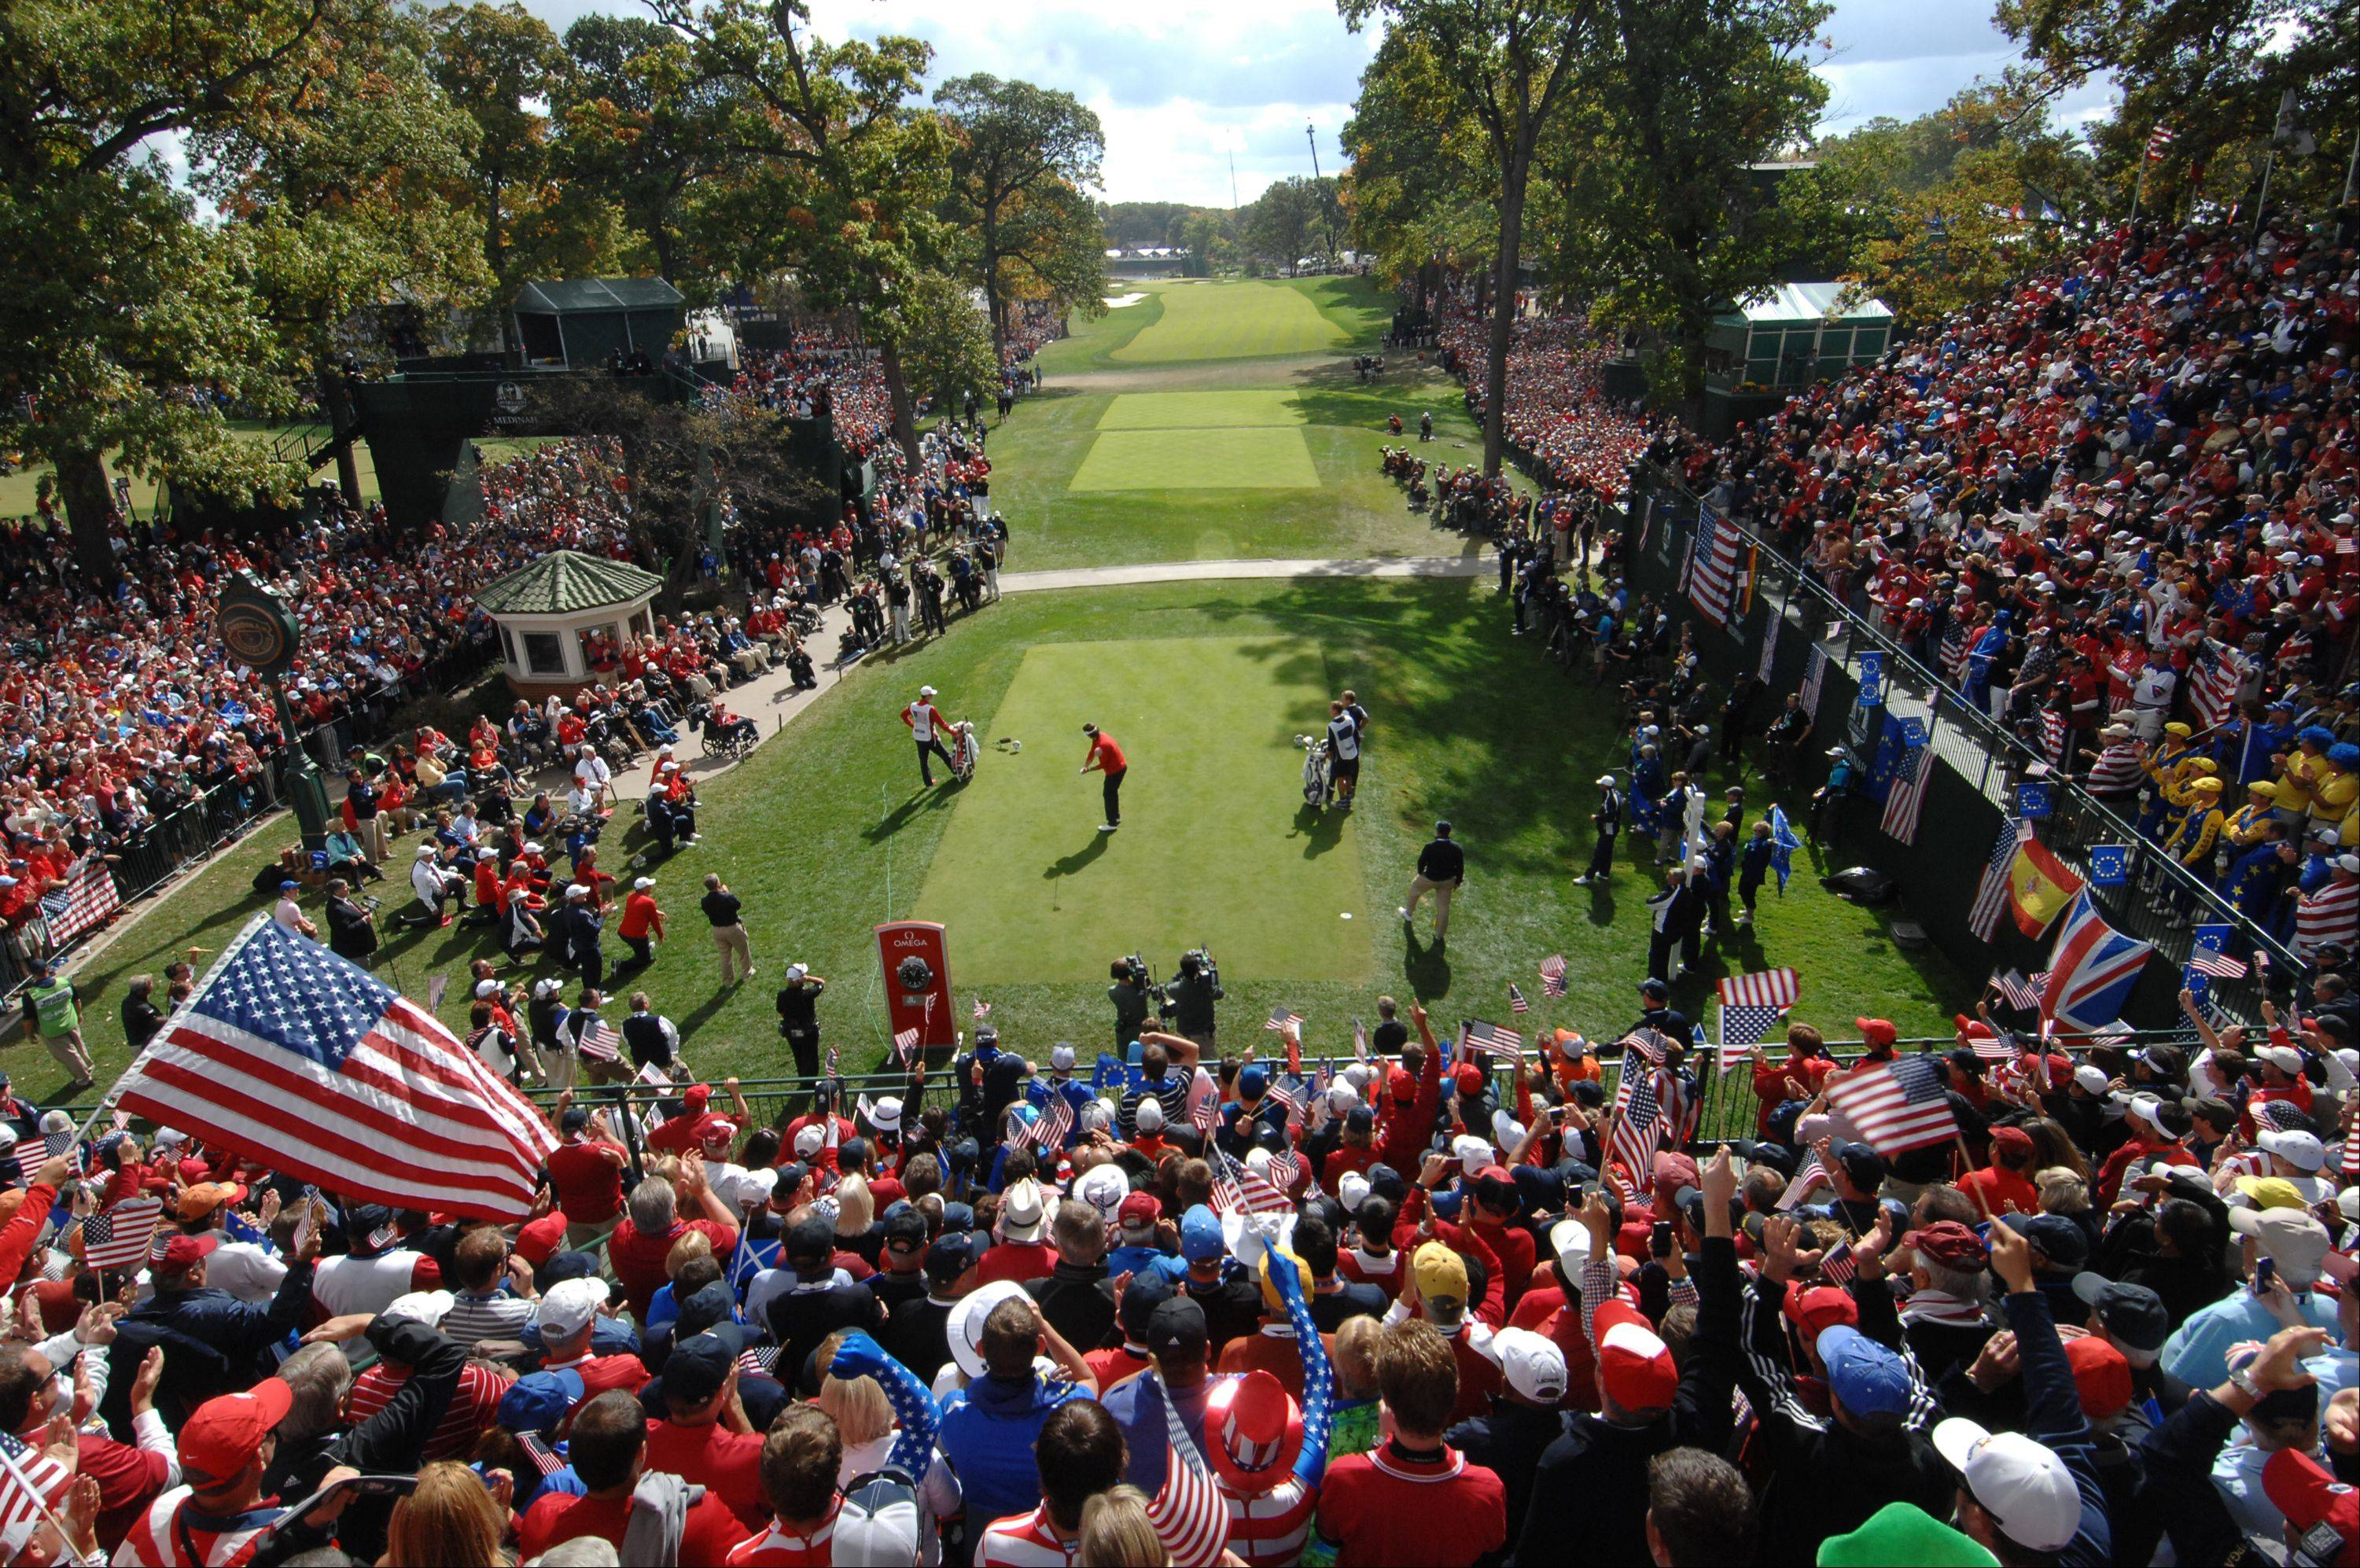 Fans for both the U.S. and European teams were out in force at the first tee Sunday during the final day of the 2012 Ryder Cup at Medinah Country Club. Here, Bubba Watson tees off to start the final round of play.